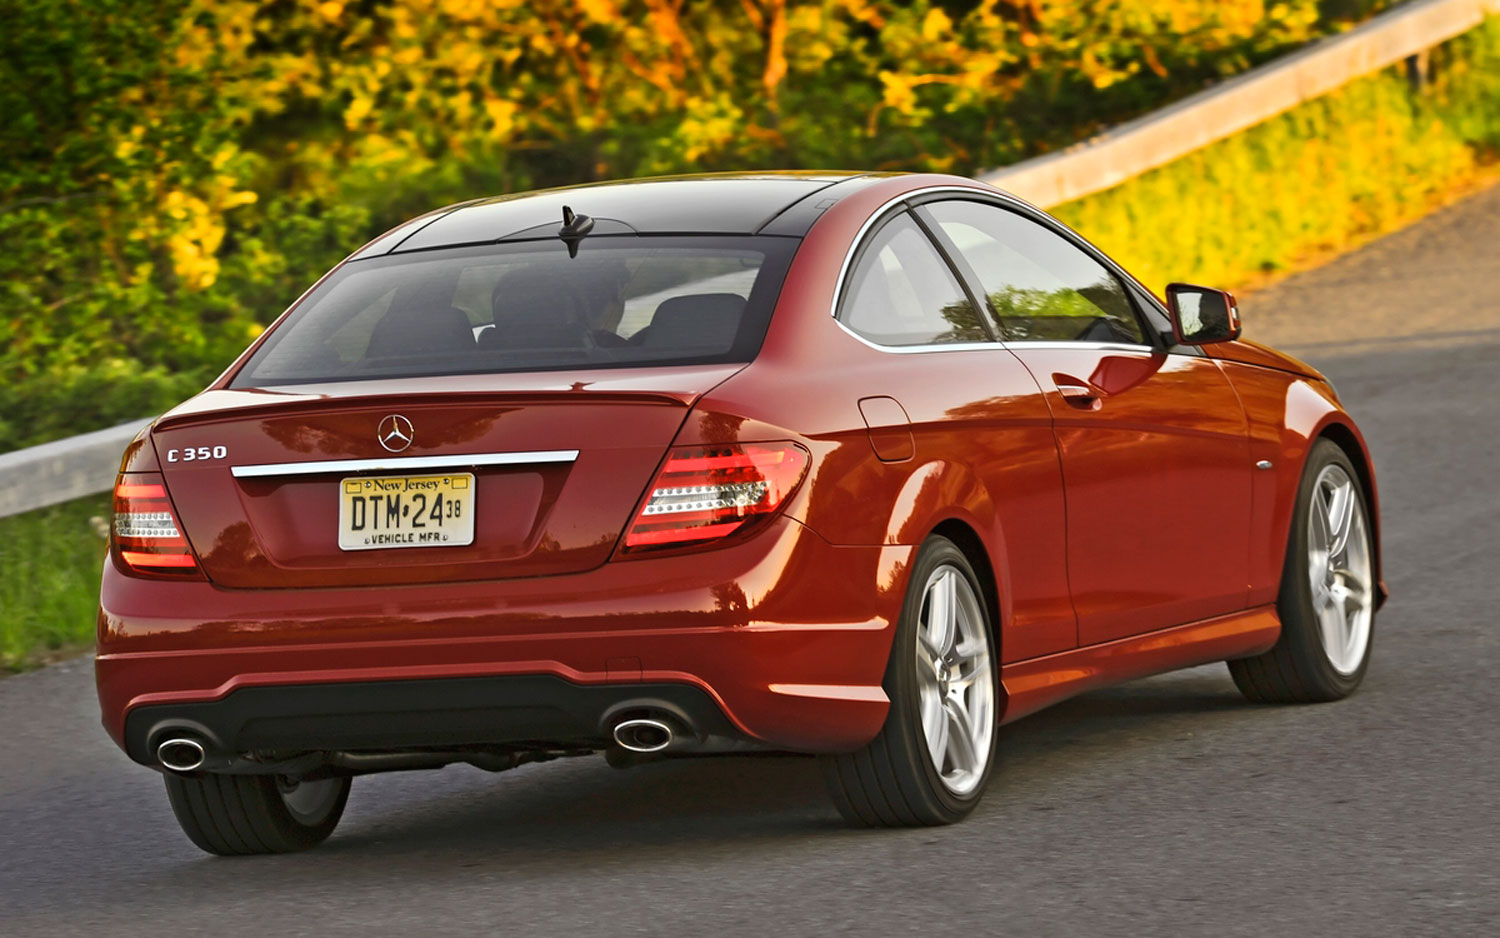 Feature flick 2012 mercedes benz c class coupe breaks the for Mercedes benz c350 2012